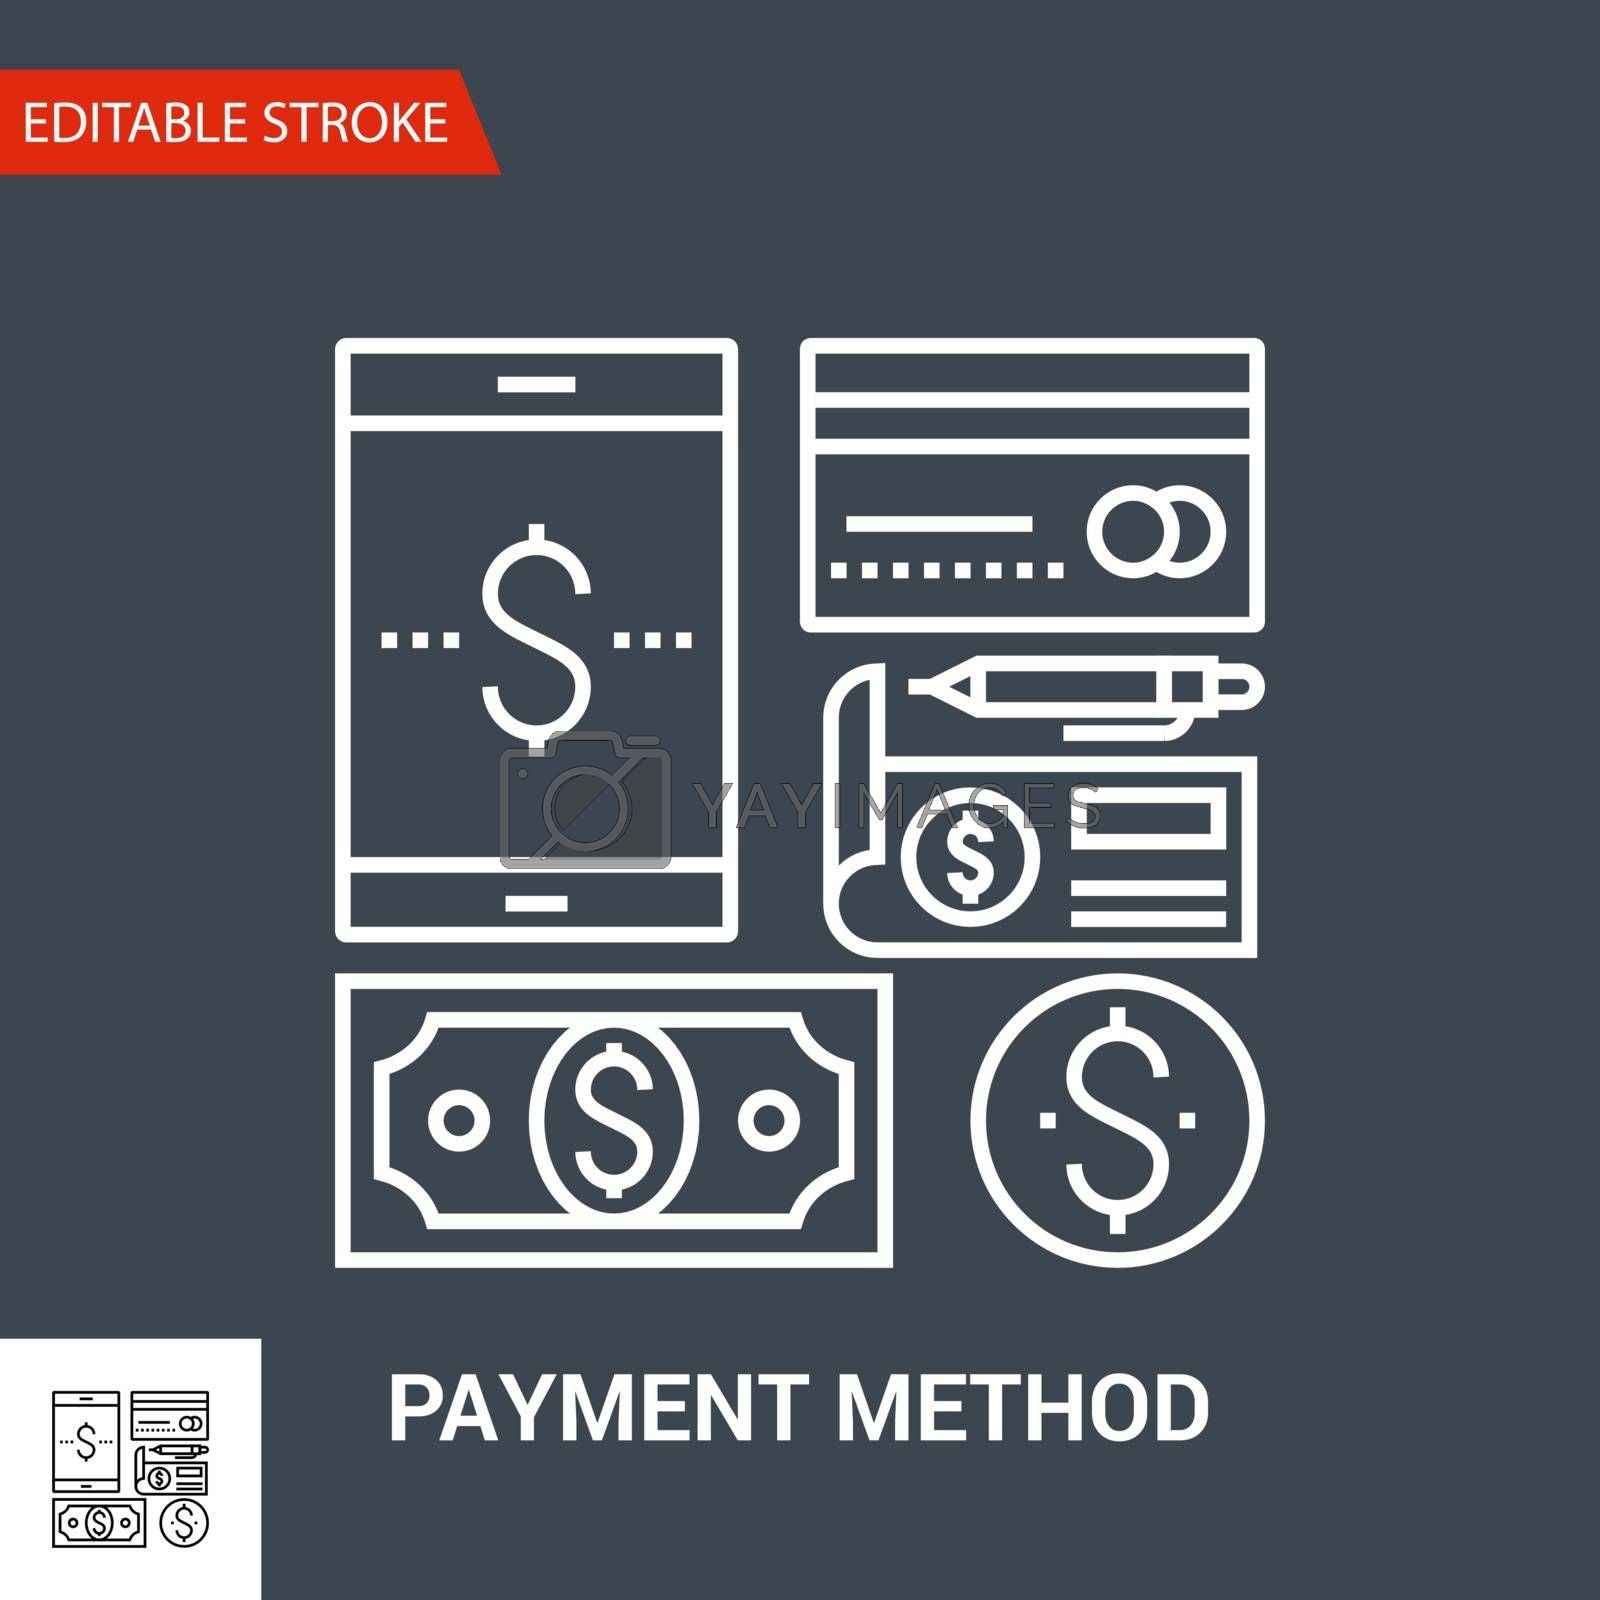 Payment Method Related Vector Thin Line Icon. Isolated on Black Background. Editable Stroke. Vector Illustration.